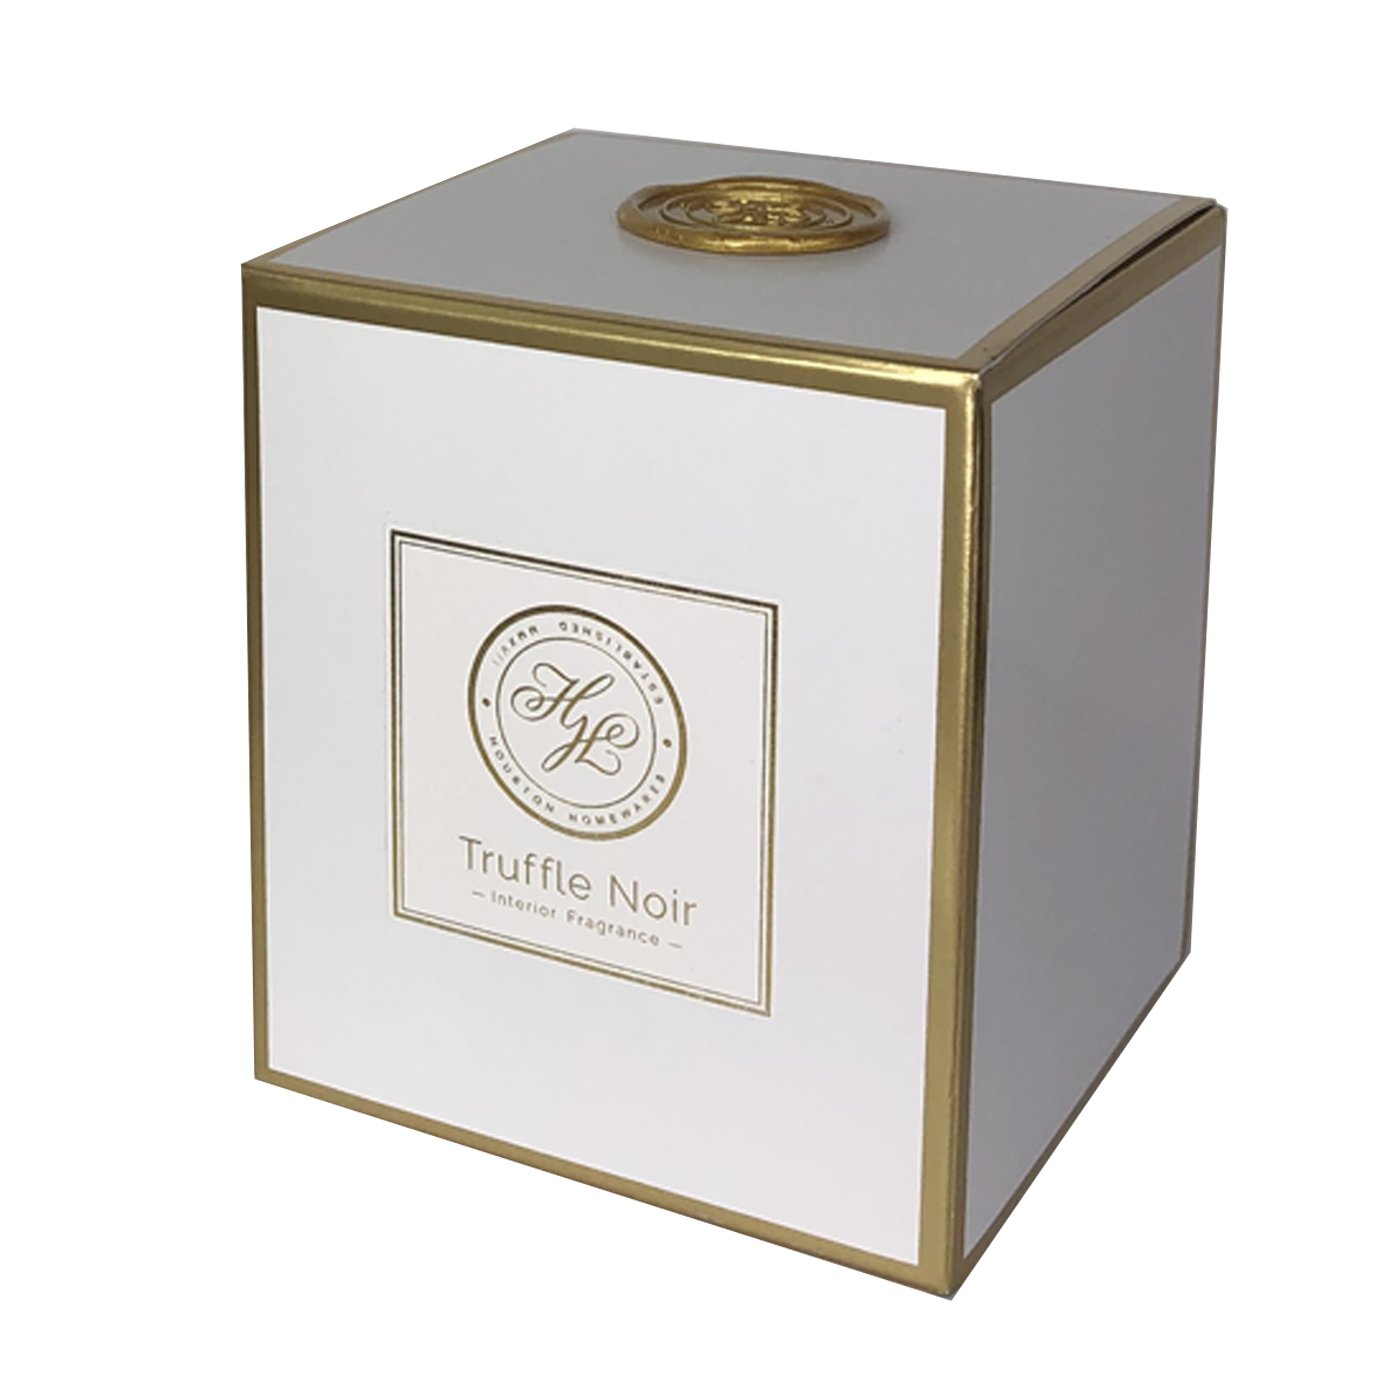 1111 Truffle Noir candle luxury soy wax candle